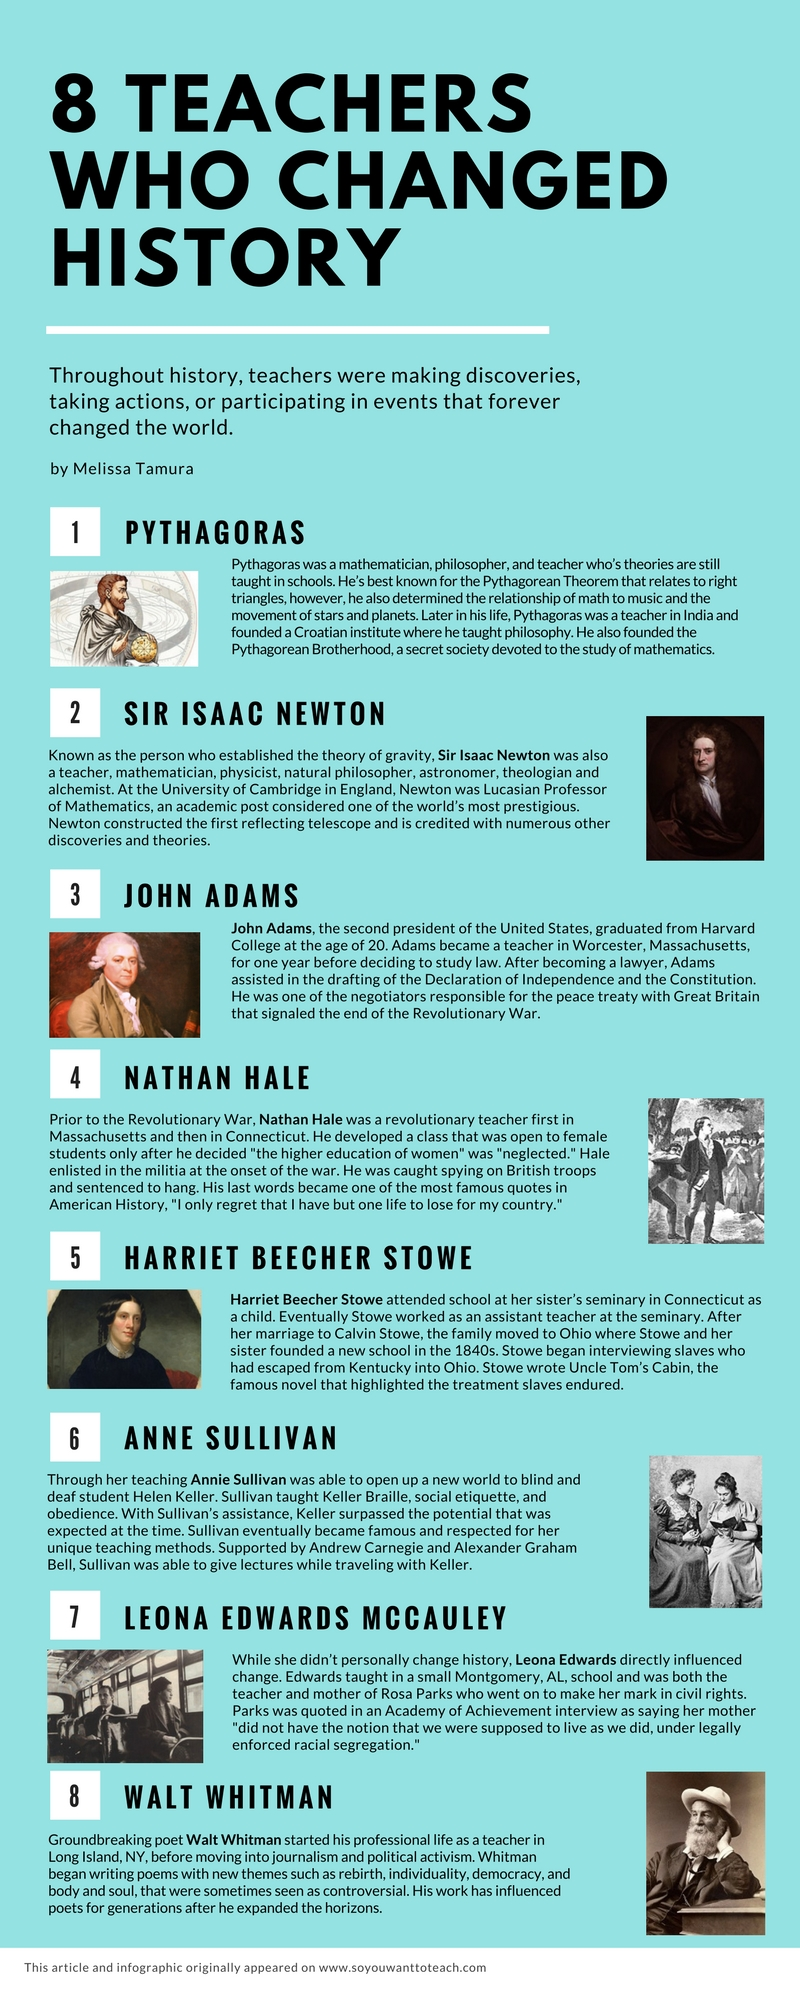 8 Teachers Who Changed History